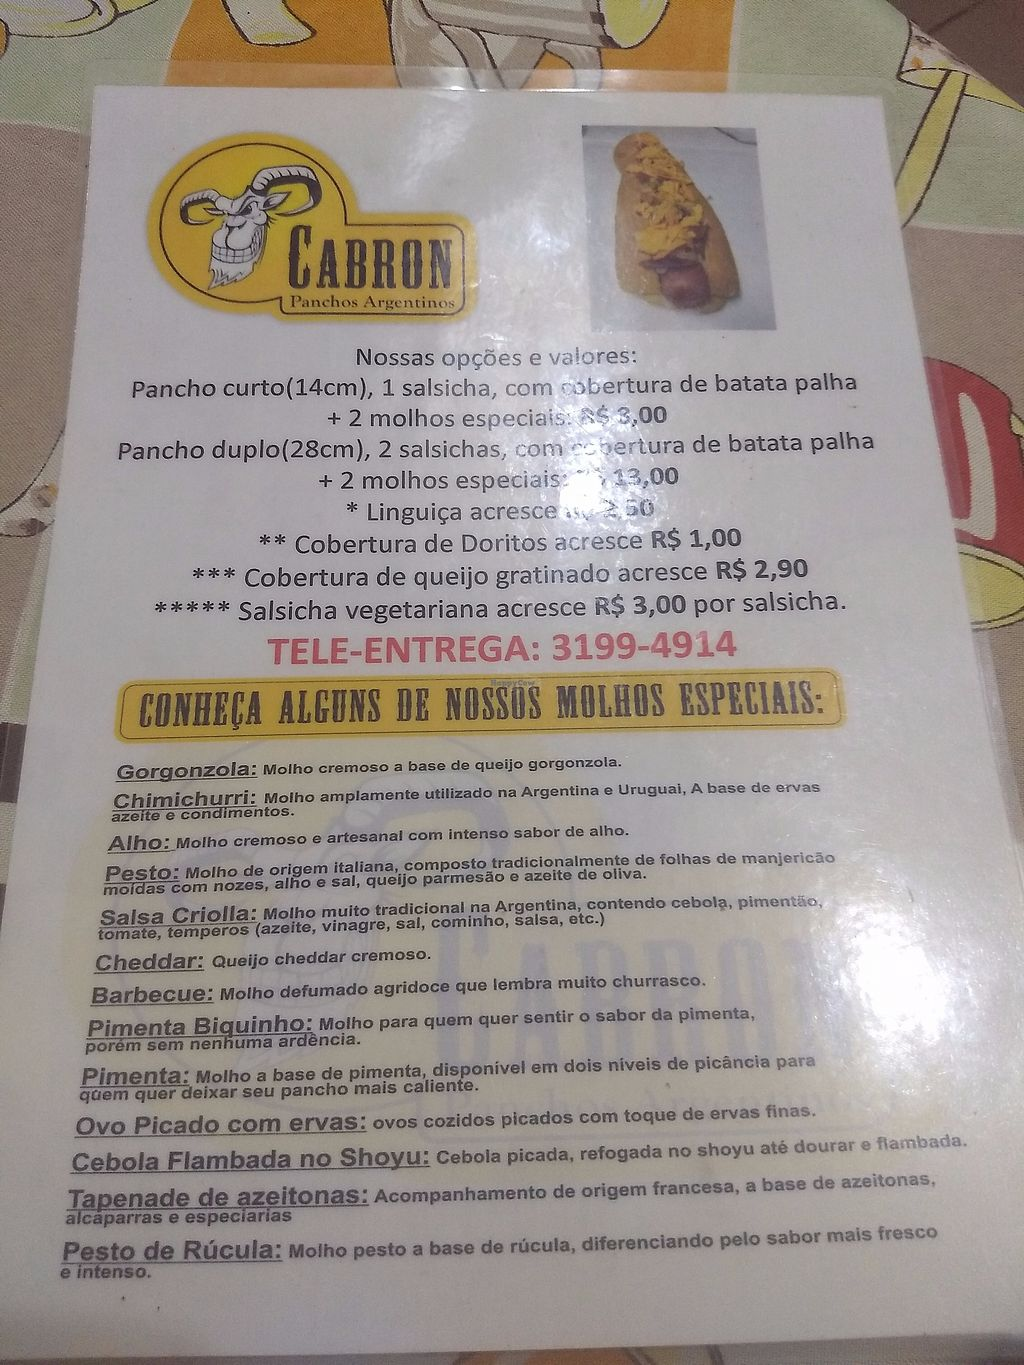 """Photo of El Cabron - Panchos Argentinos  by <a href=""""/members/profile/cedres"""">cedres</a> <br/>Menu <br/> September 9, 2017  - <a href='/contact/abuse/image/100568/302266'>Report</a>"""